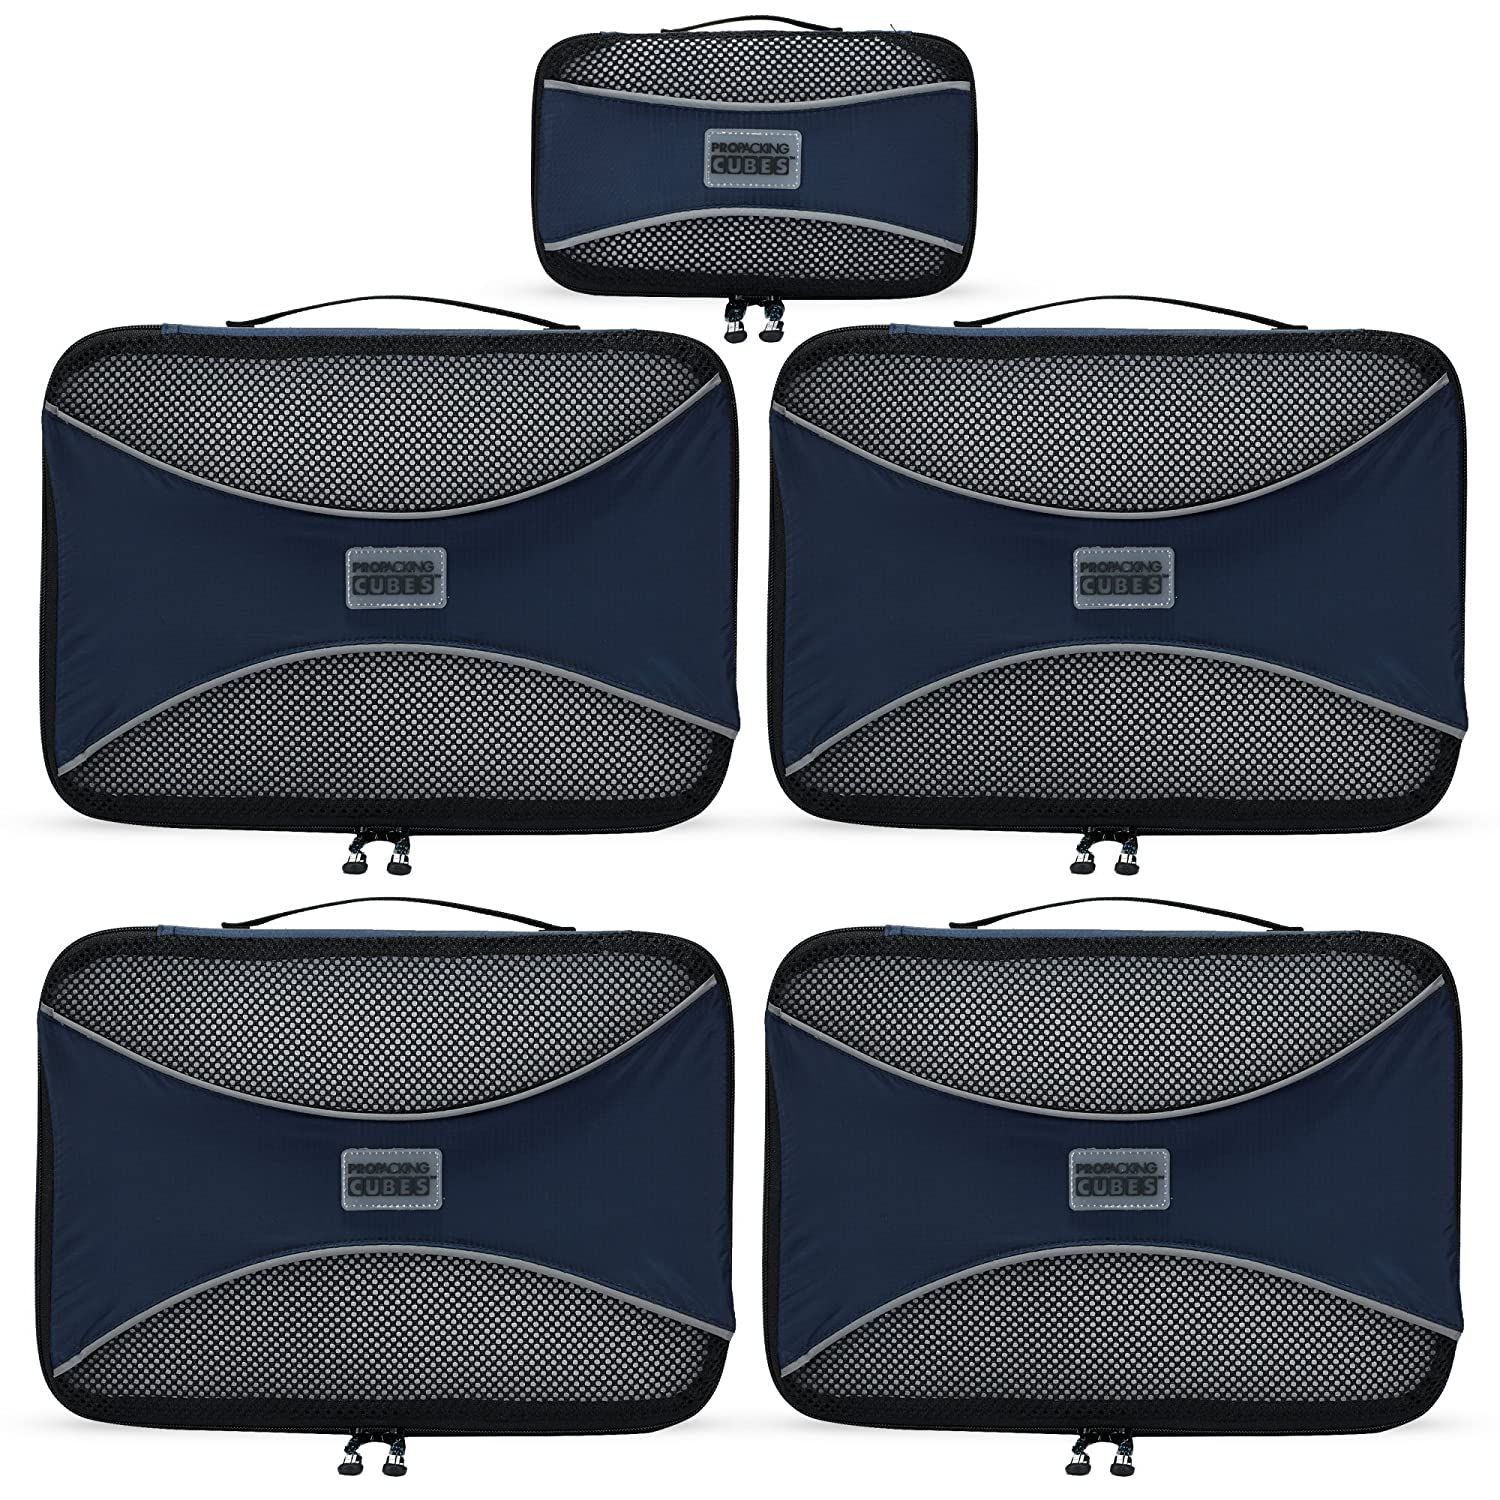 PRO Packing Cubes | 5 Piece | Organizers & Space Saver | Travel Cube Value Set PPC5Aqua